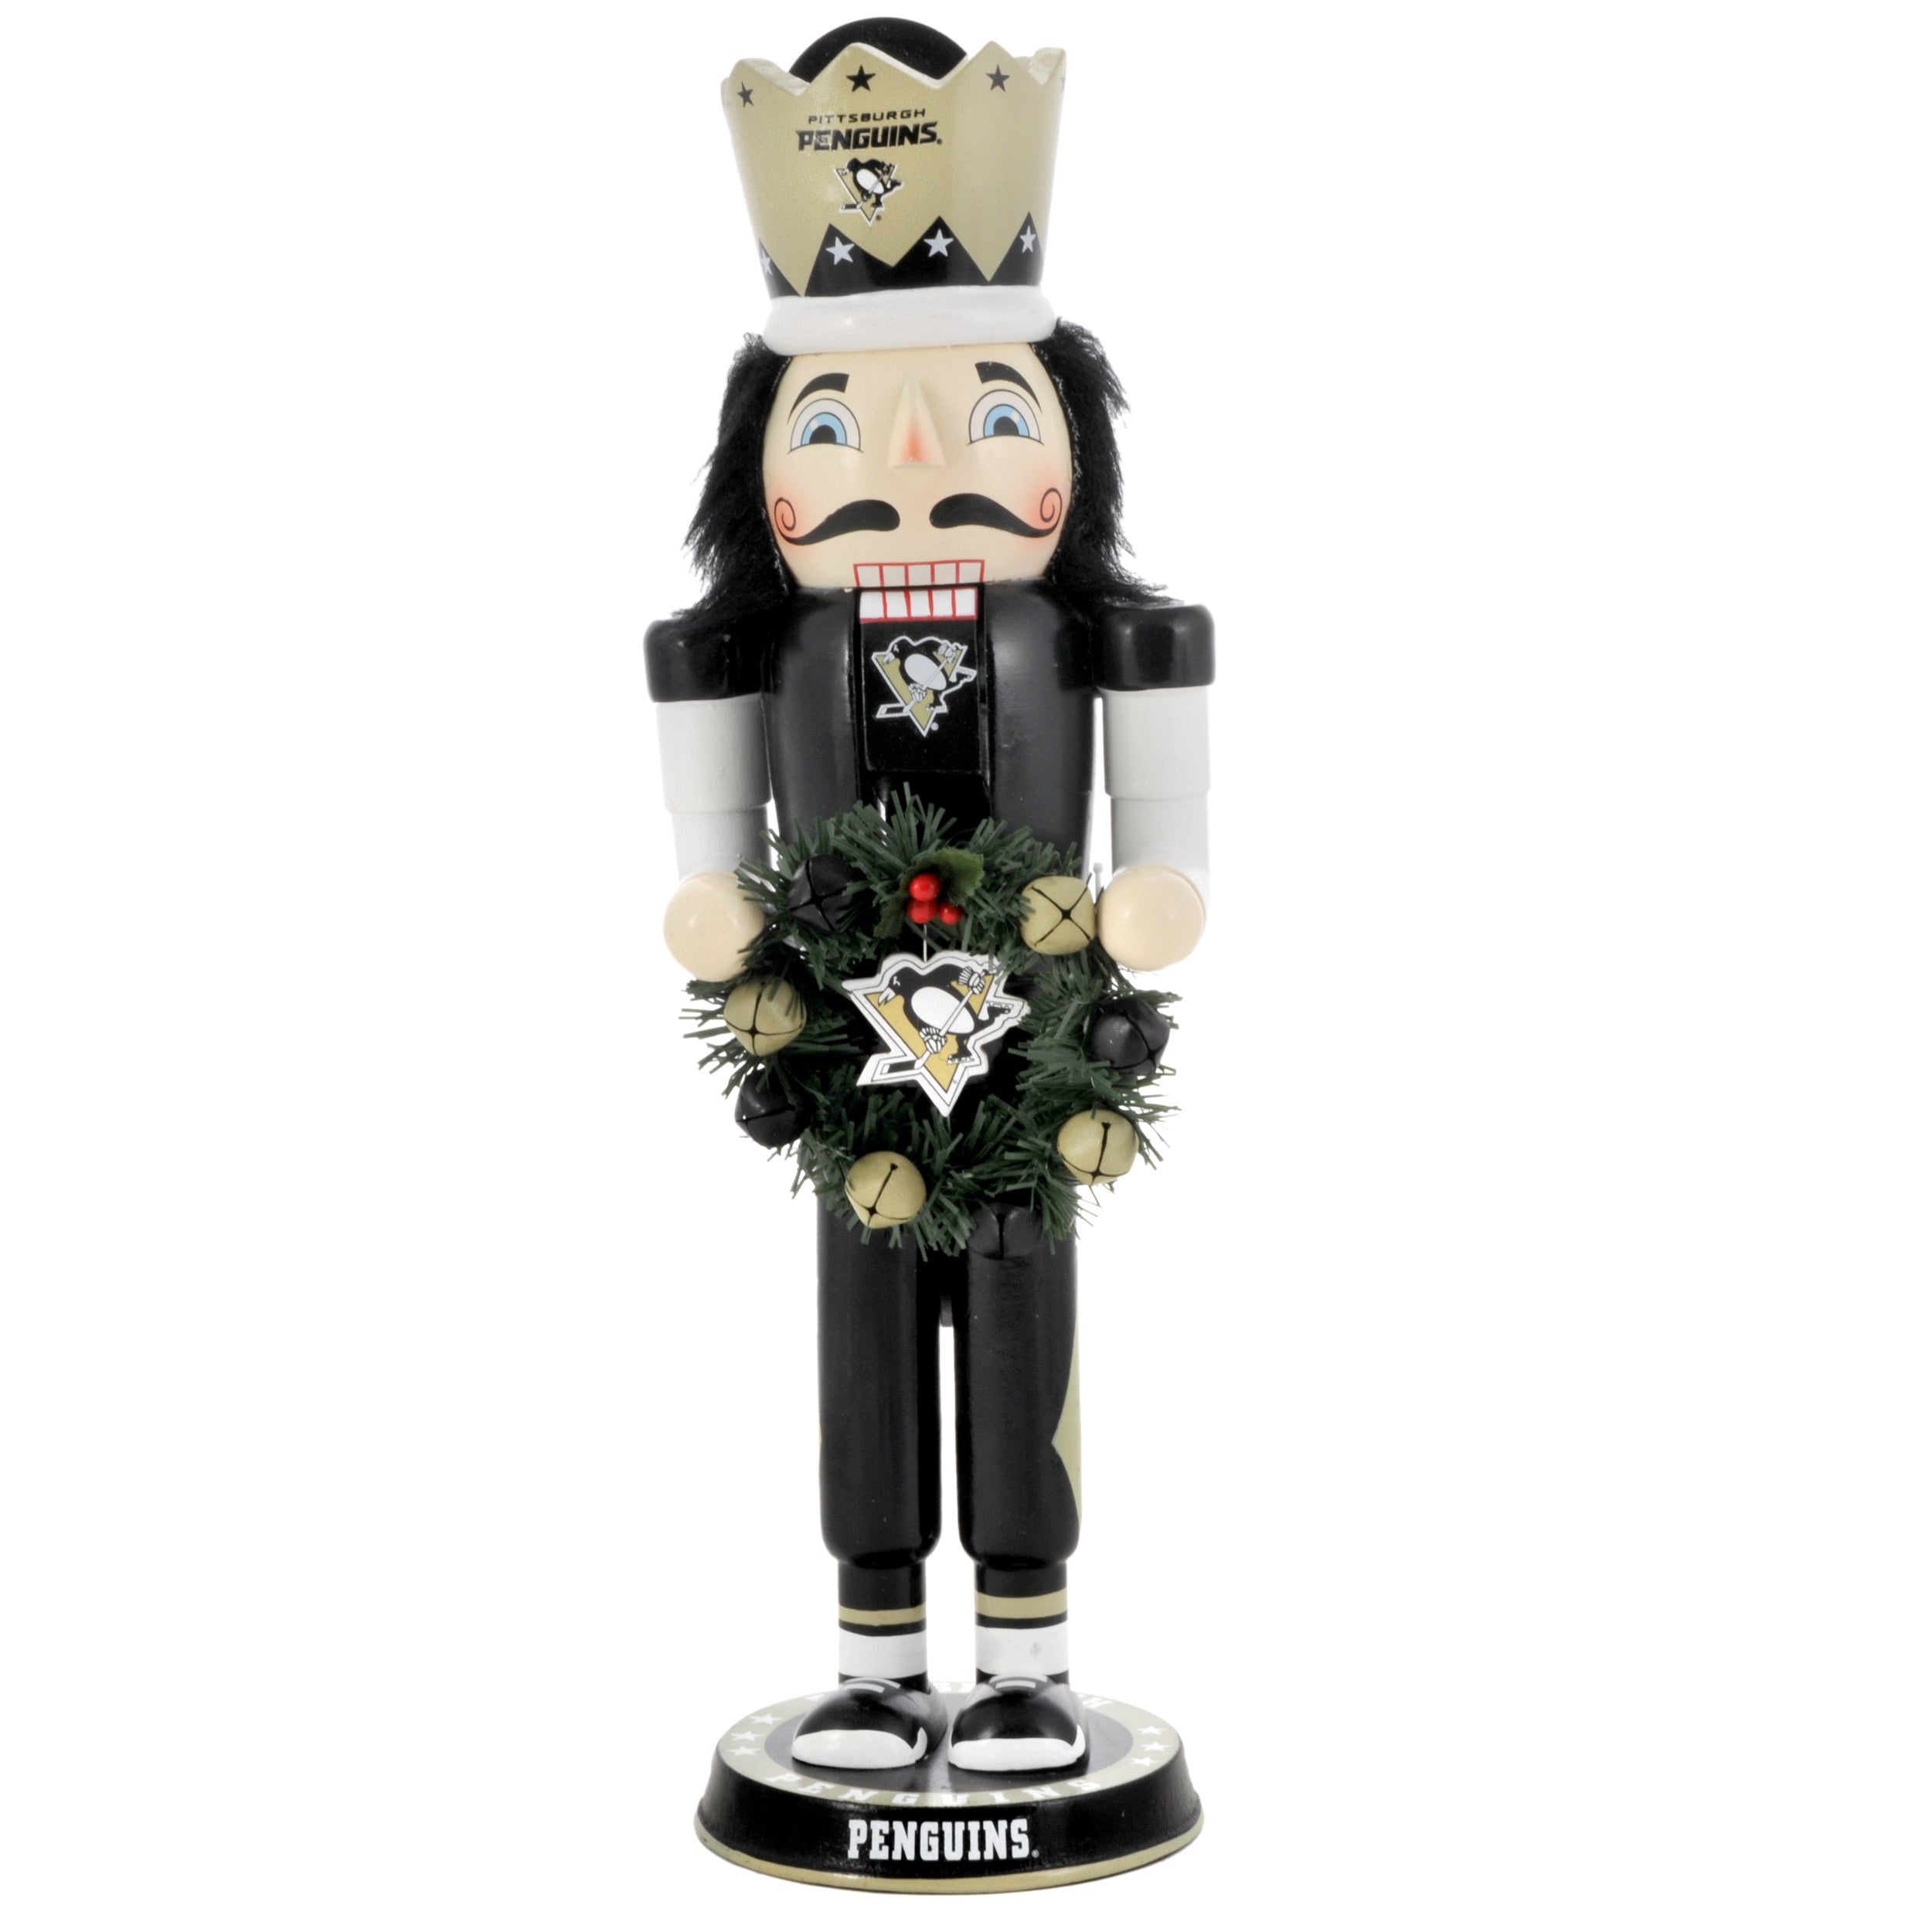 Pittsburgh Penguins Bedroom Decor Pittsburgh Penguins 14 Inch Wreath Nutcracker Free Shipping On